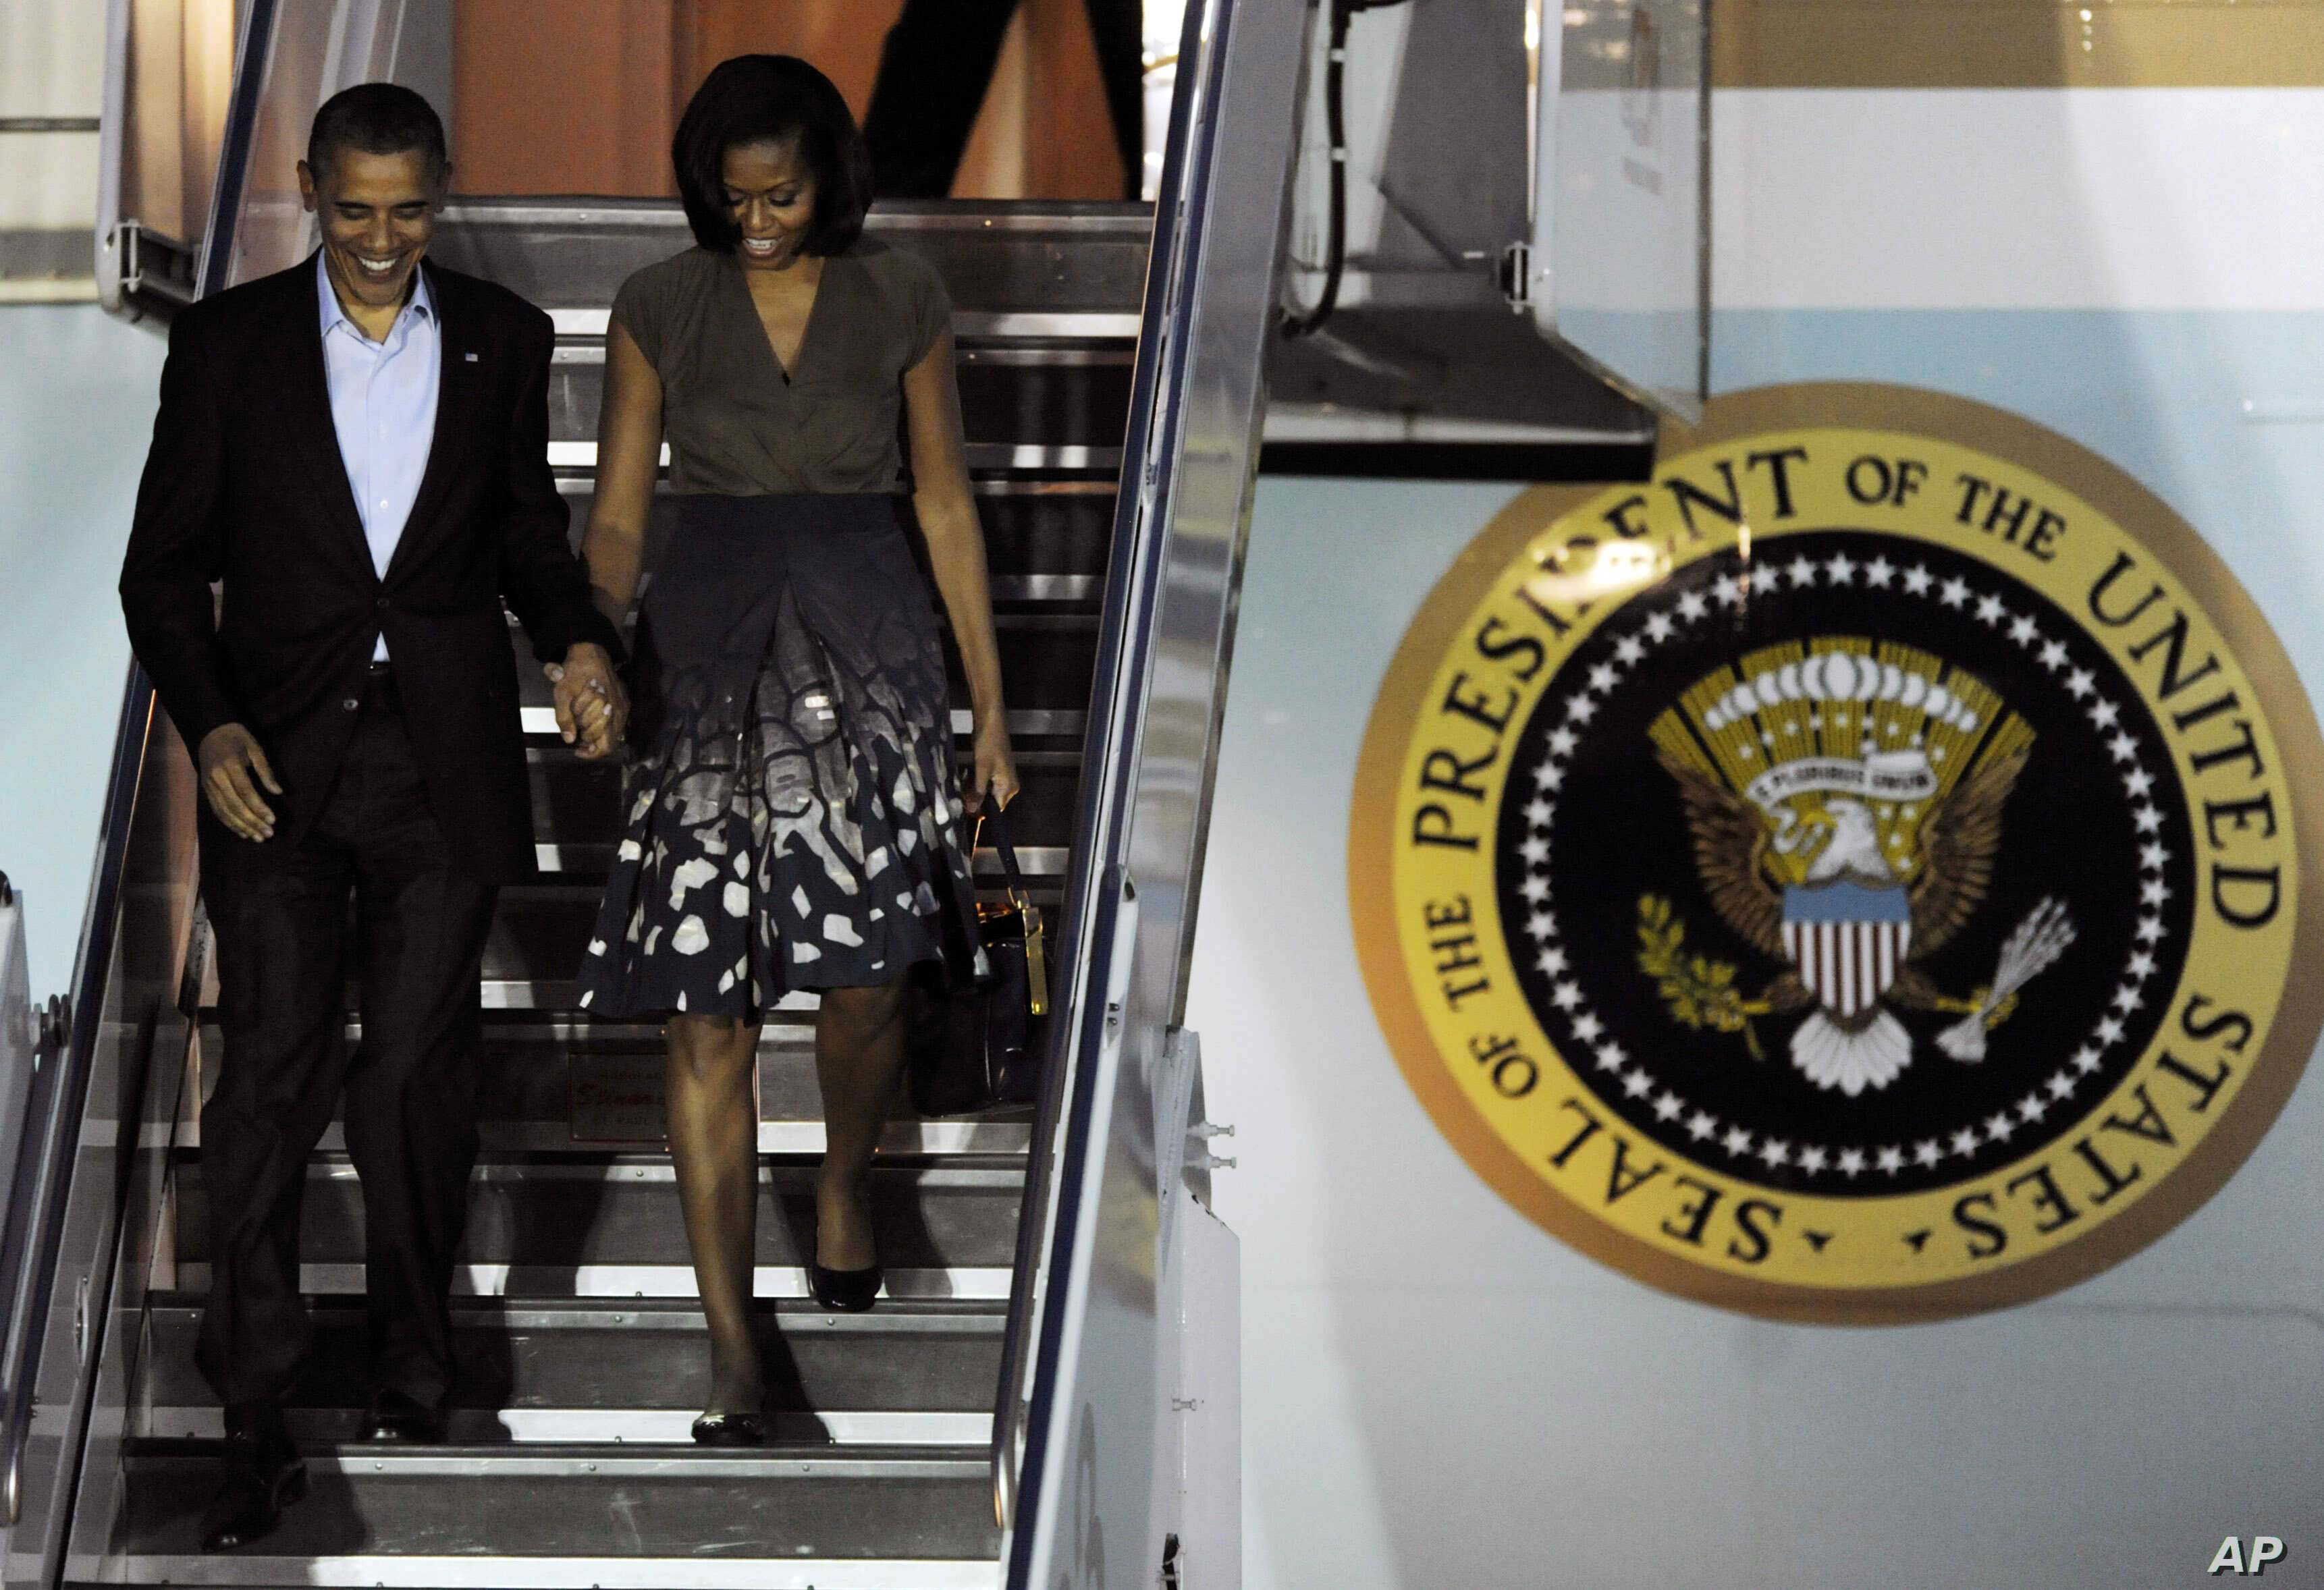 President Barack Obama and first lady Michelle Obama arrive at Chicago O'Hare International Airport to attend the NATO Summit, Saturday, May 19, 2012 in Chicago.